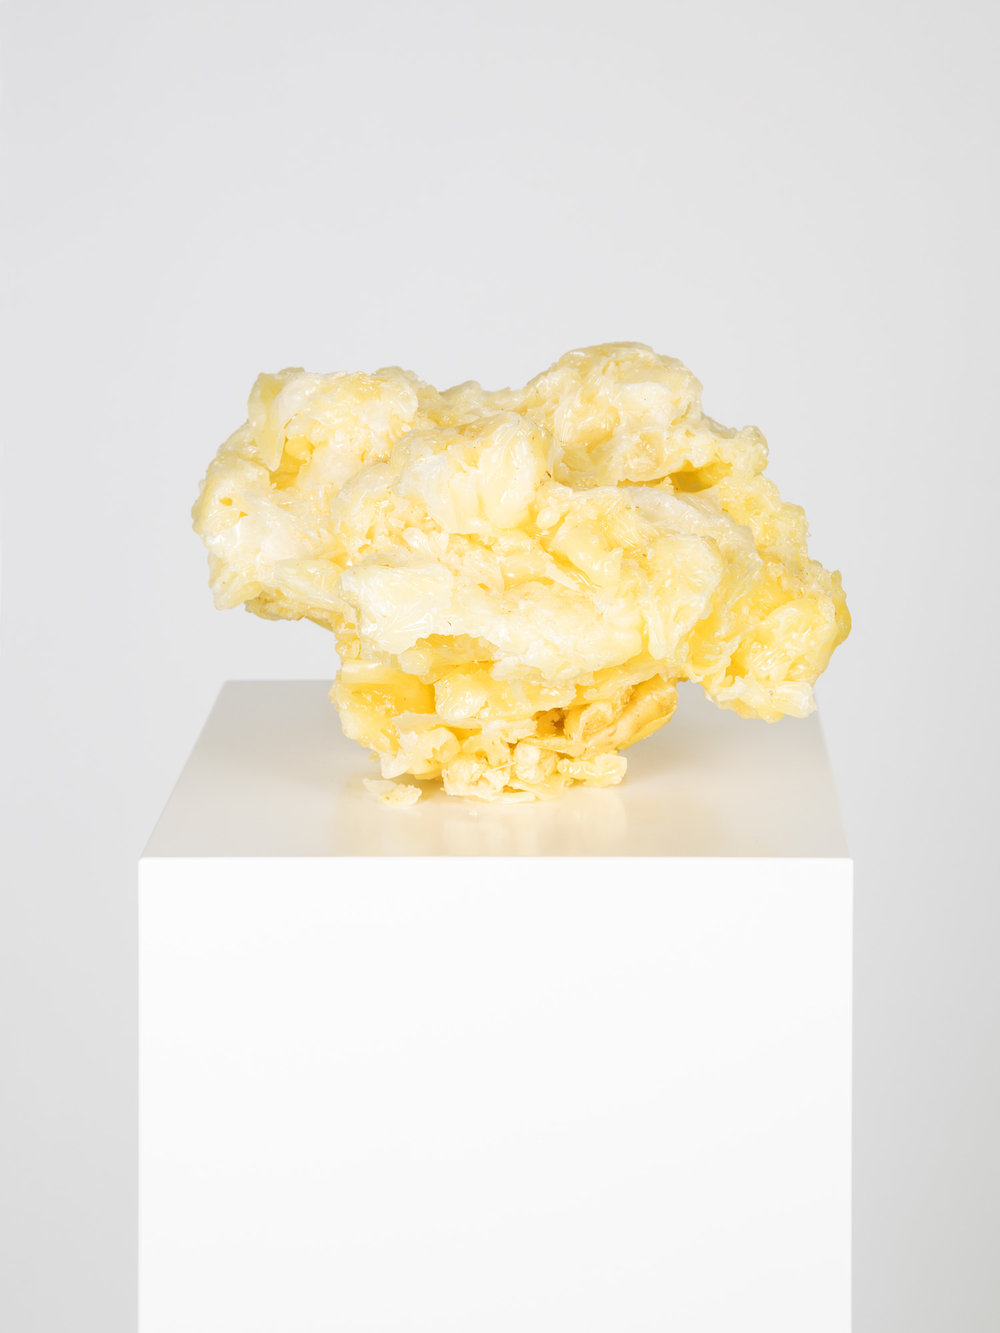 Im Atelier gefundenes Objekt , 2006/2013  Wax and curcuma  Sculpture: 13 × 20 × 20 cm (5 ⅛ × 7 ⅞ × 7 ⅞ inches)  Pedestal: 120 × 20 × 20 cm